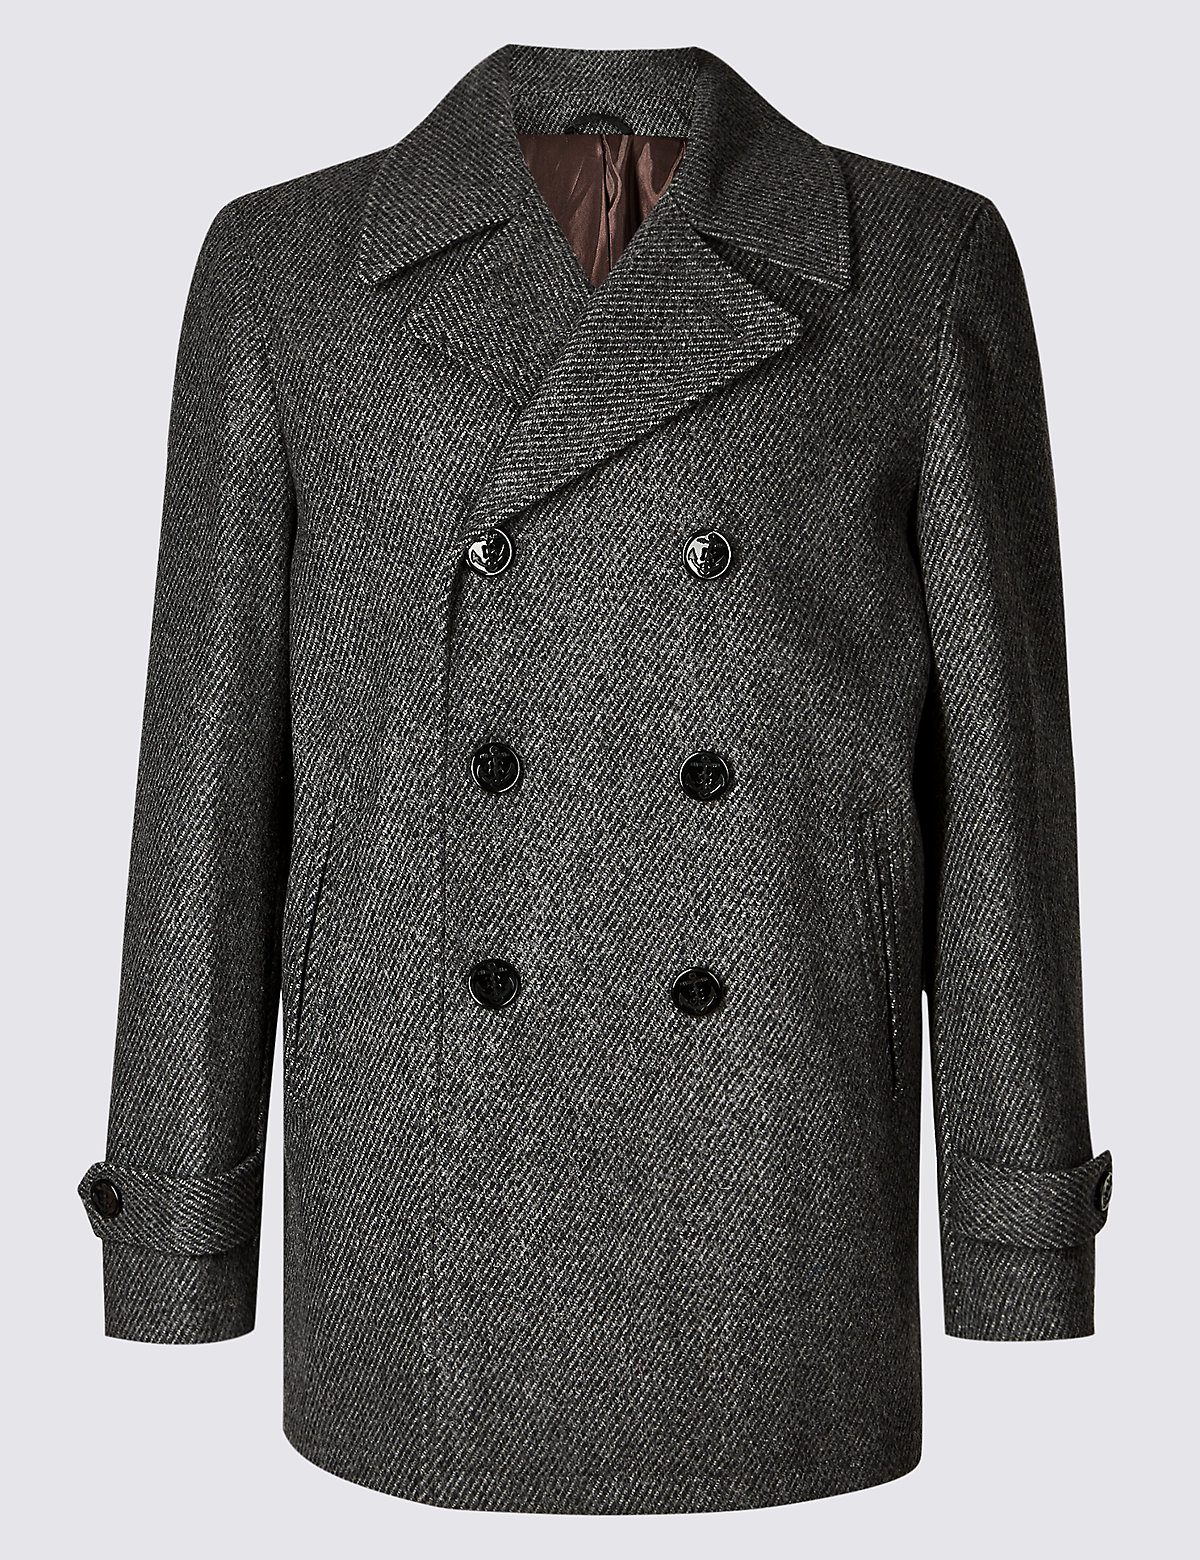 Marks & Spencer Grey Wool Blend Peacoat